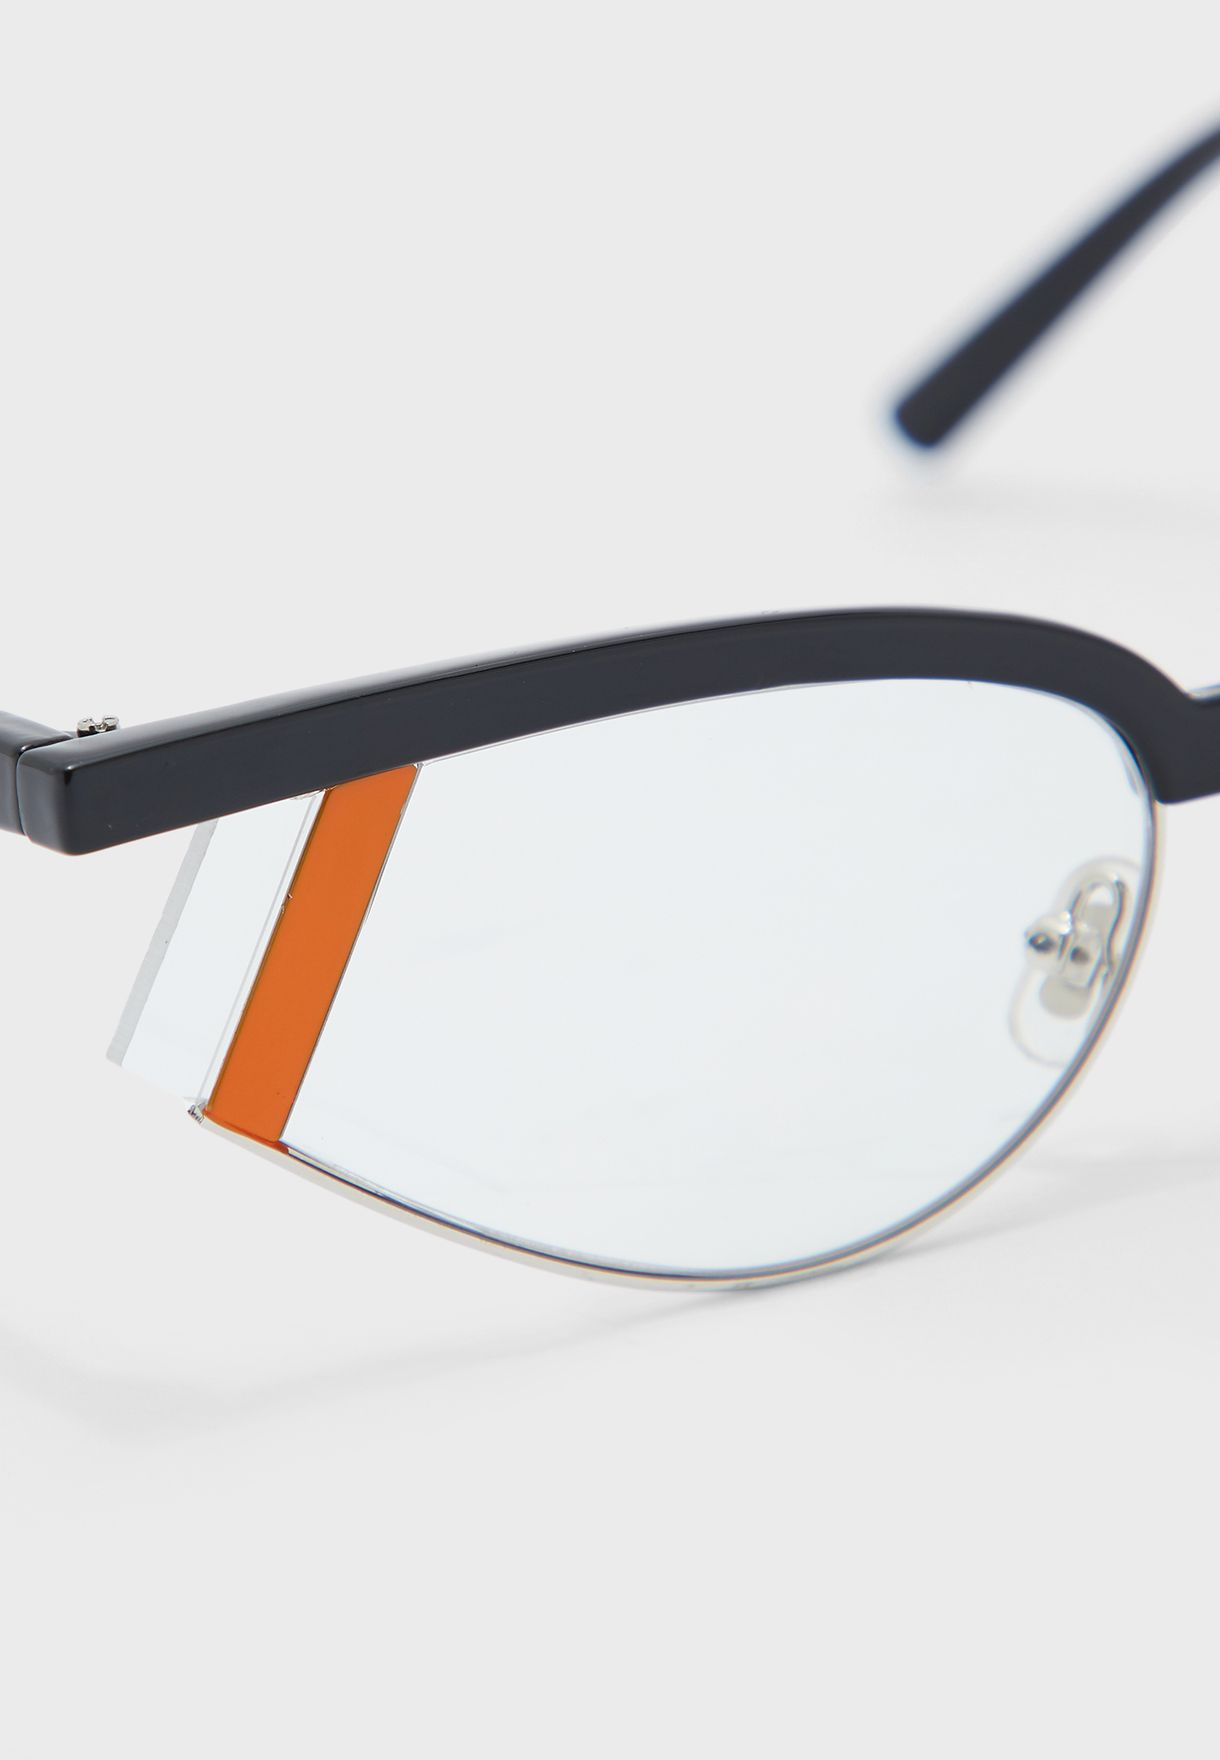 Cateye Sunglasses With Strip Lens Detail